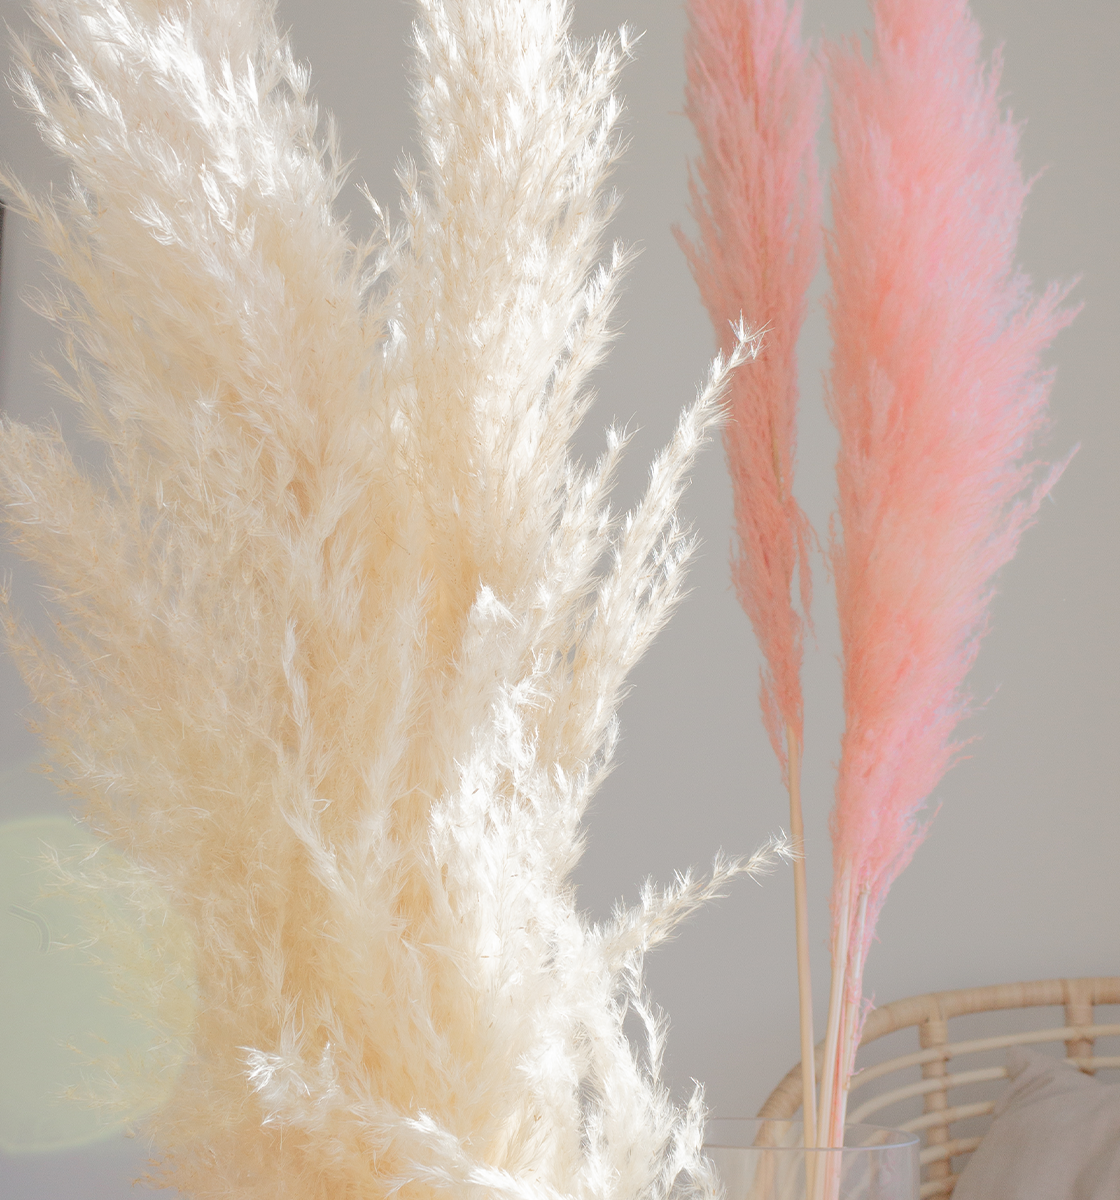 COIE Boutique Pampas grass stems are always a great housewarming gift idea for women!